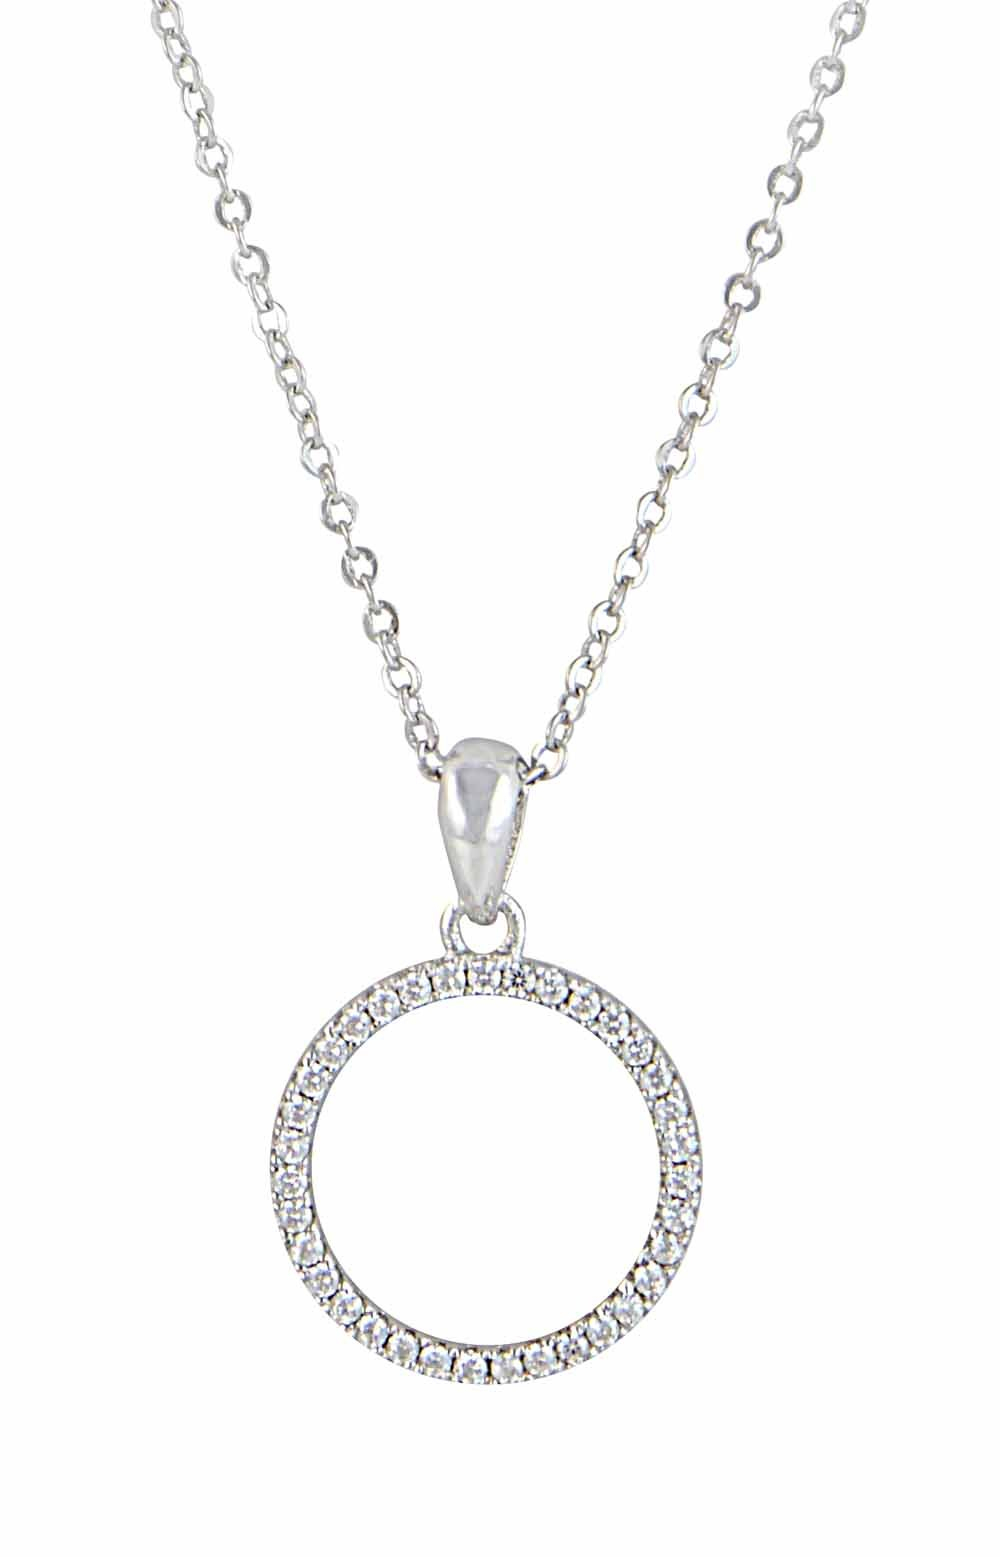 Open Silver Circle Pendant Necklace Regarding 2019 Circle Of Sparkle Necklaces (View 6 of 25)